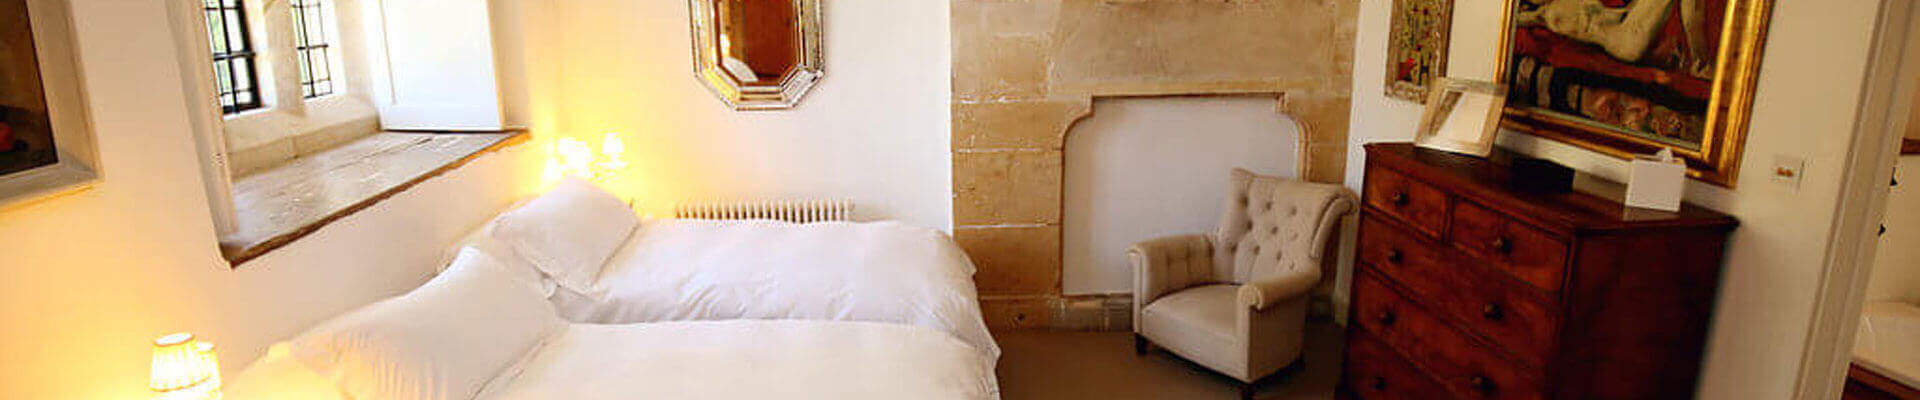 Photo of one of the bedrooms at Temple Guiting Manor